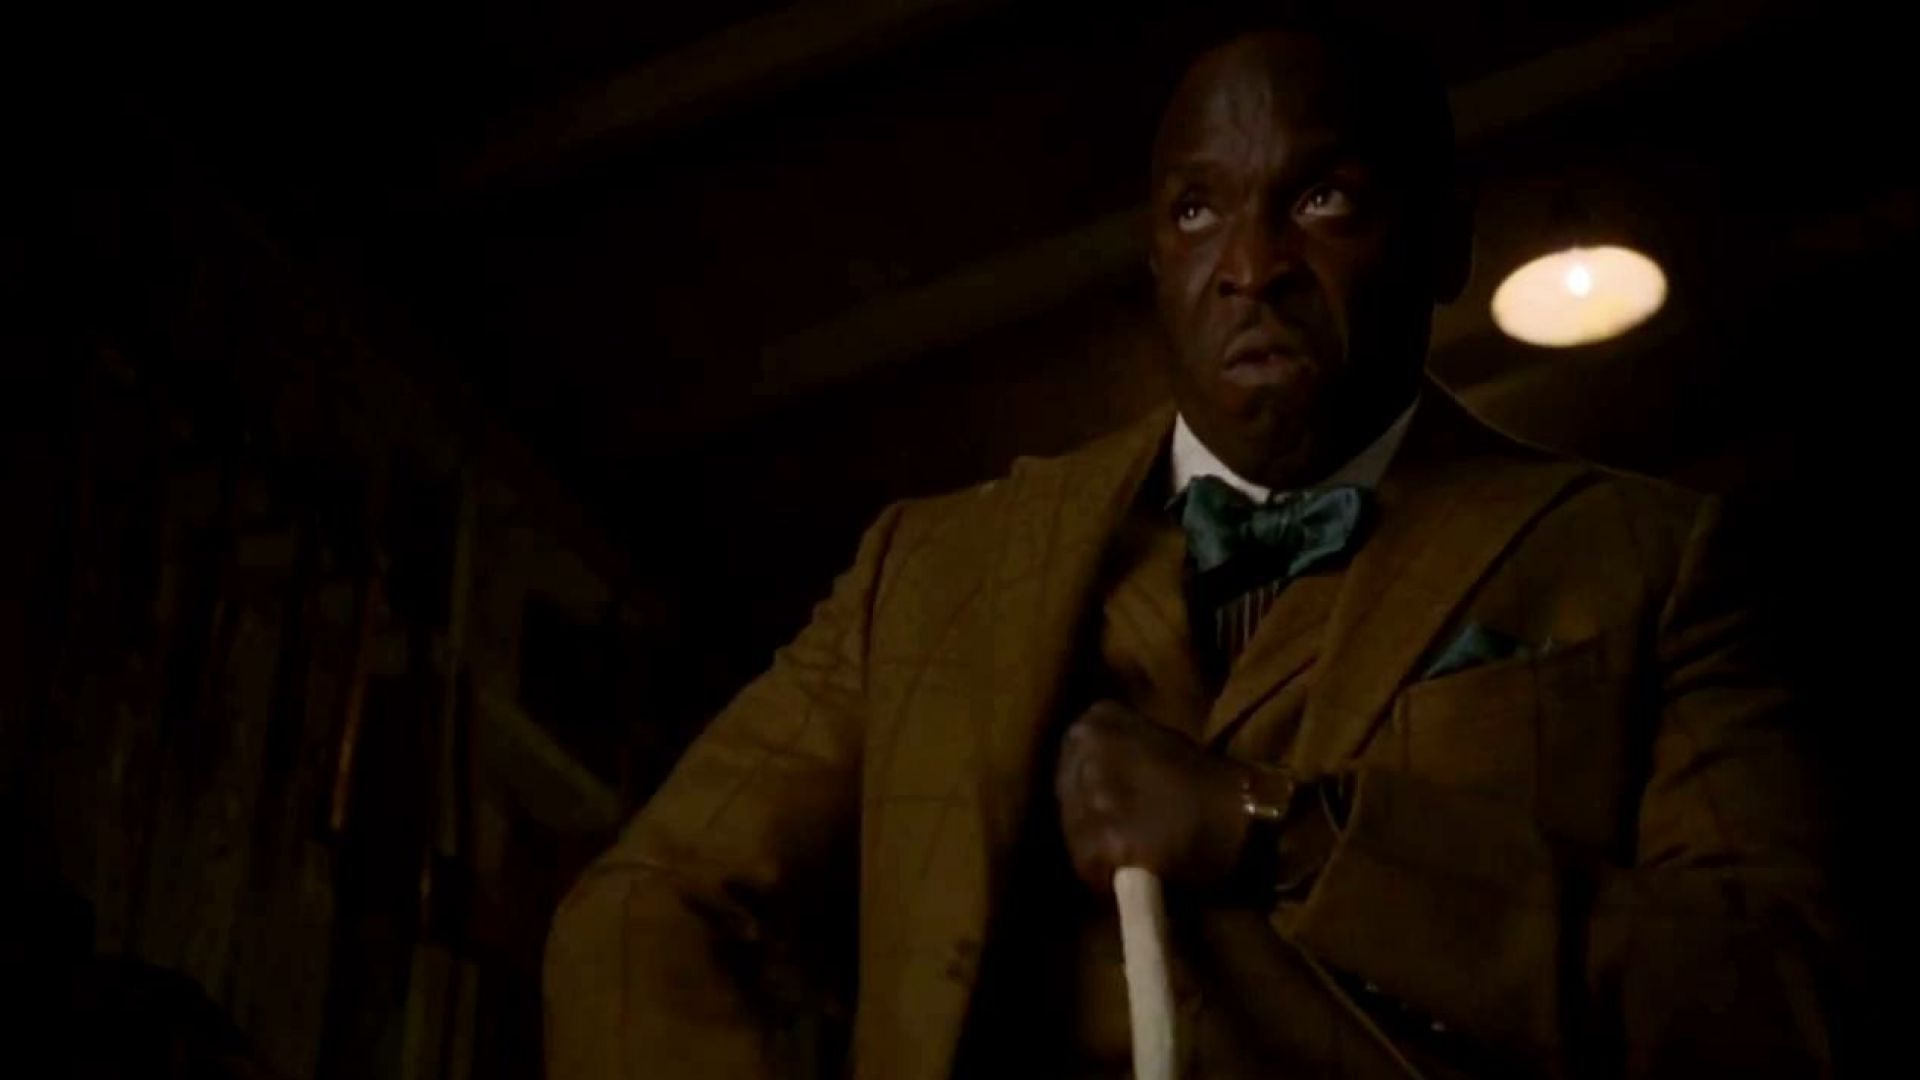 Chalky is a stranger in his own home in Boardwalk Empire Season 2 Episode 4